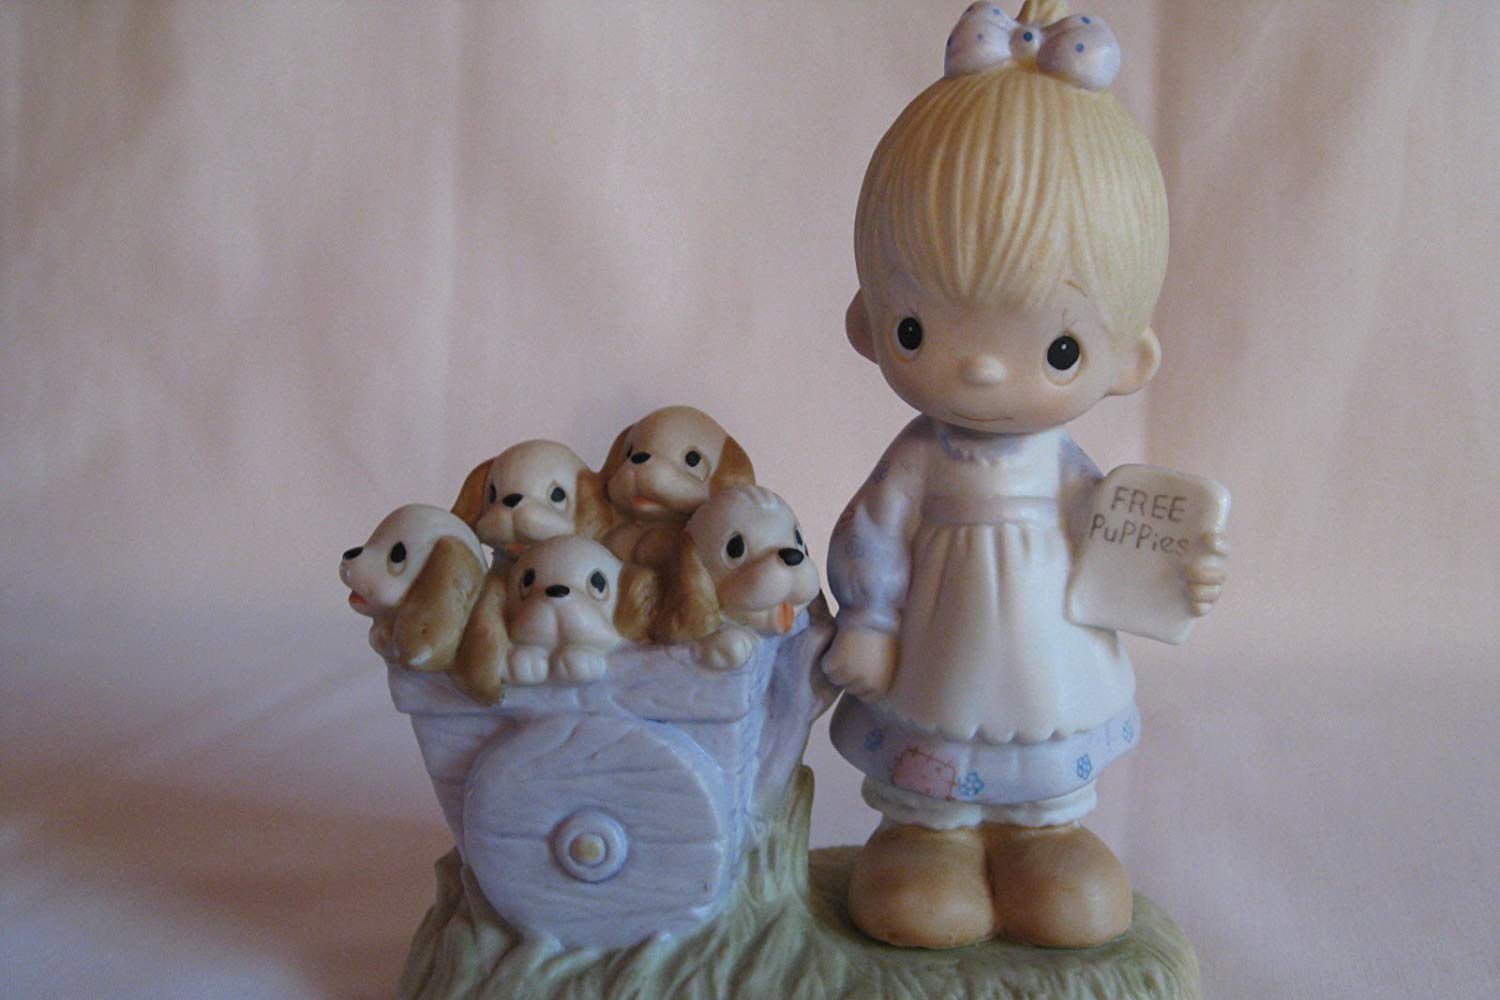 Precious Moments Figurines that Originally Sold for $15 Could Be Worth Serious Money Now